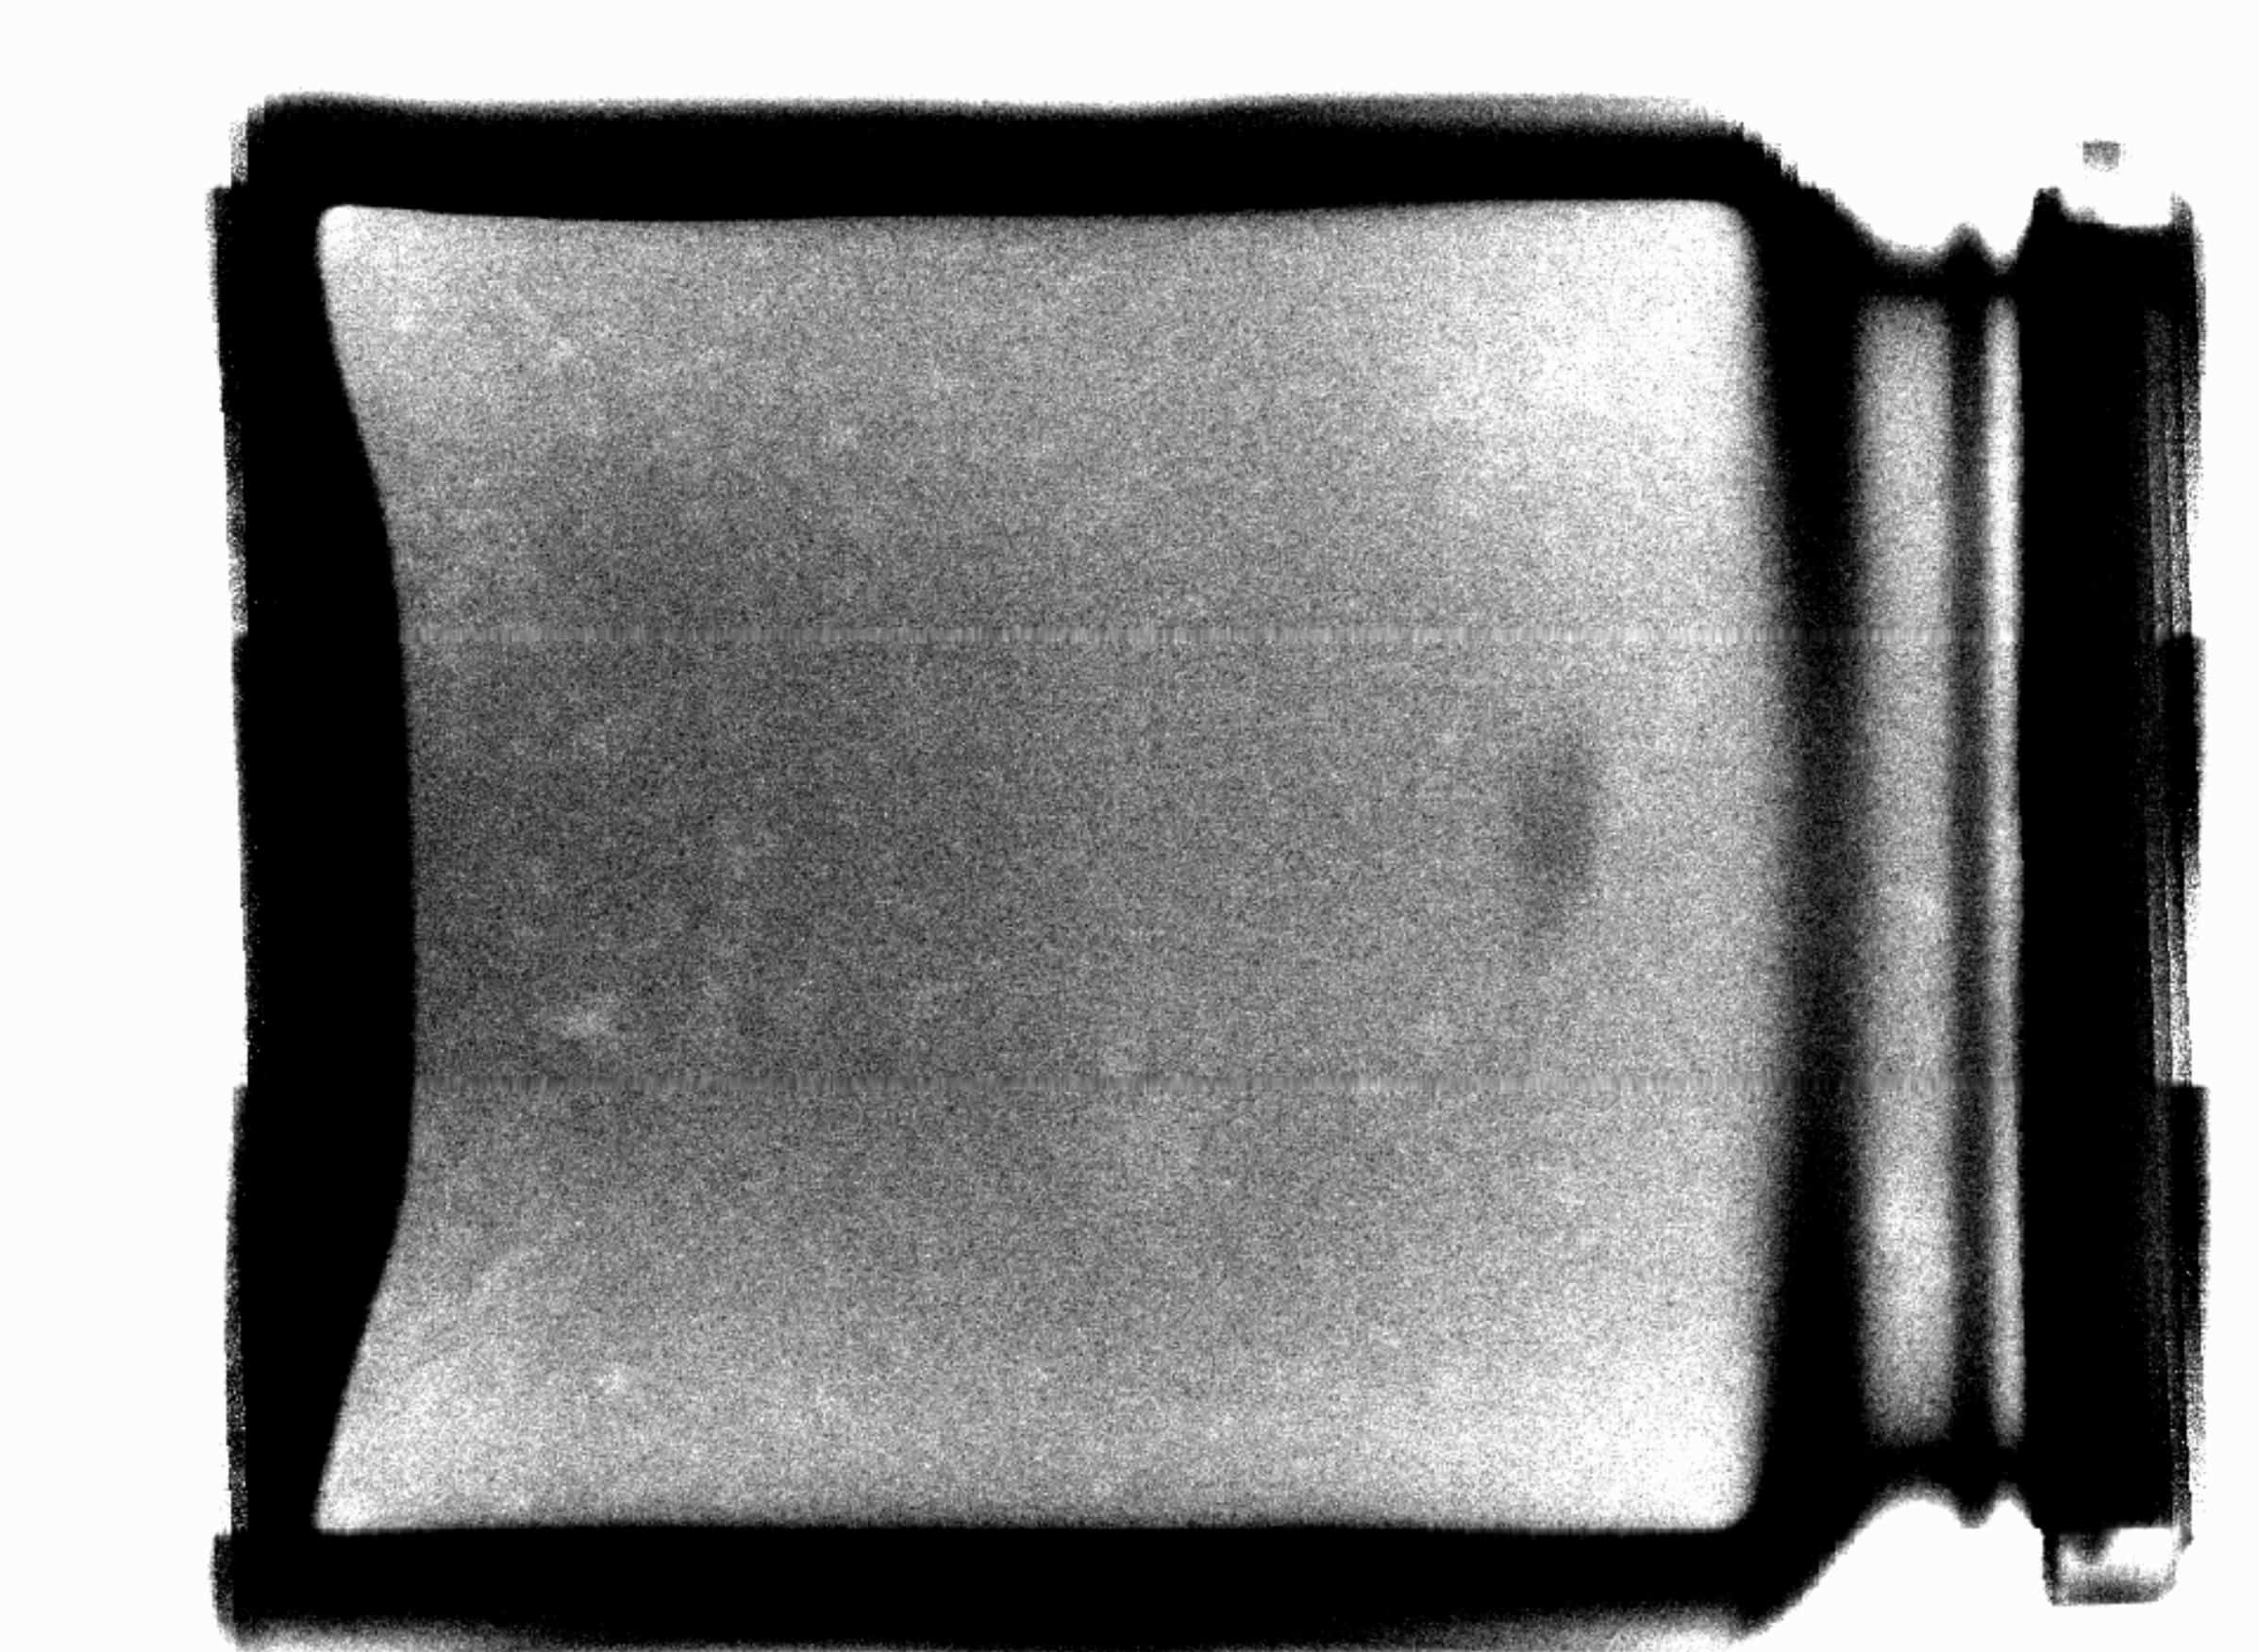 X-ray inspection of glass – glass contamination detection 2